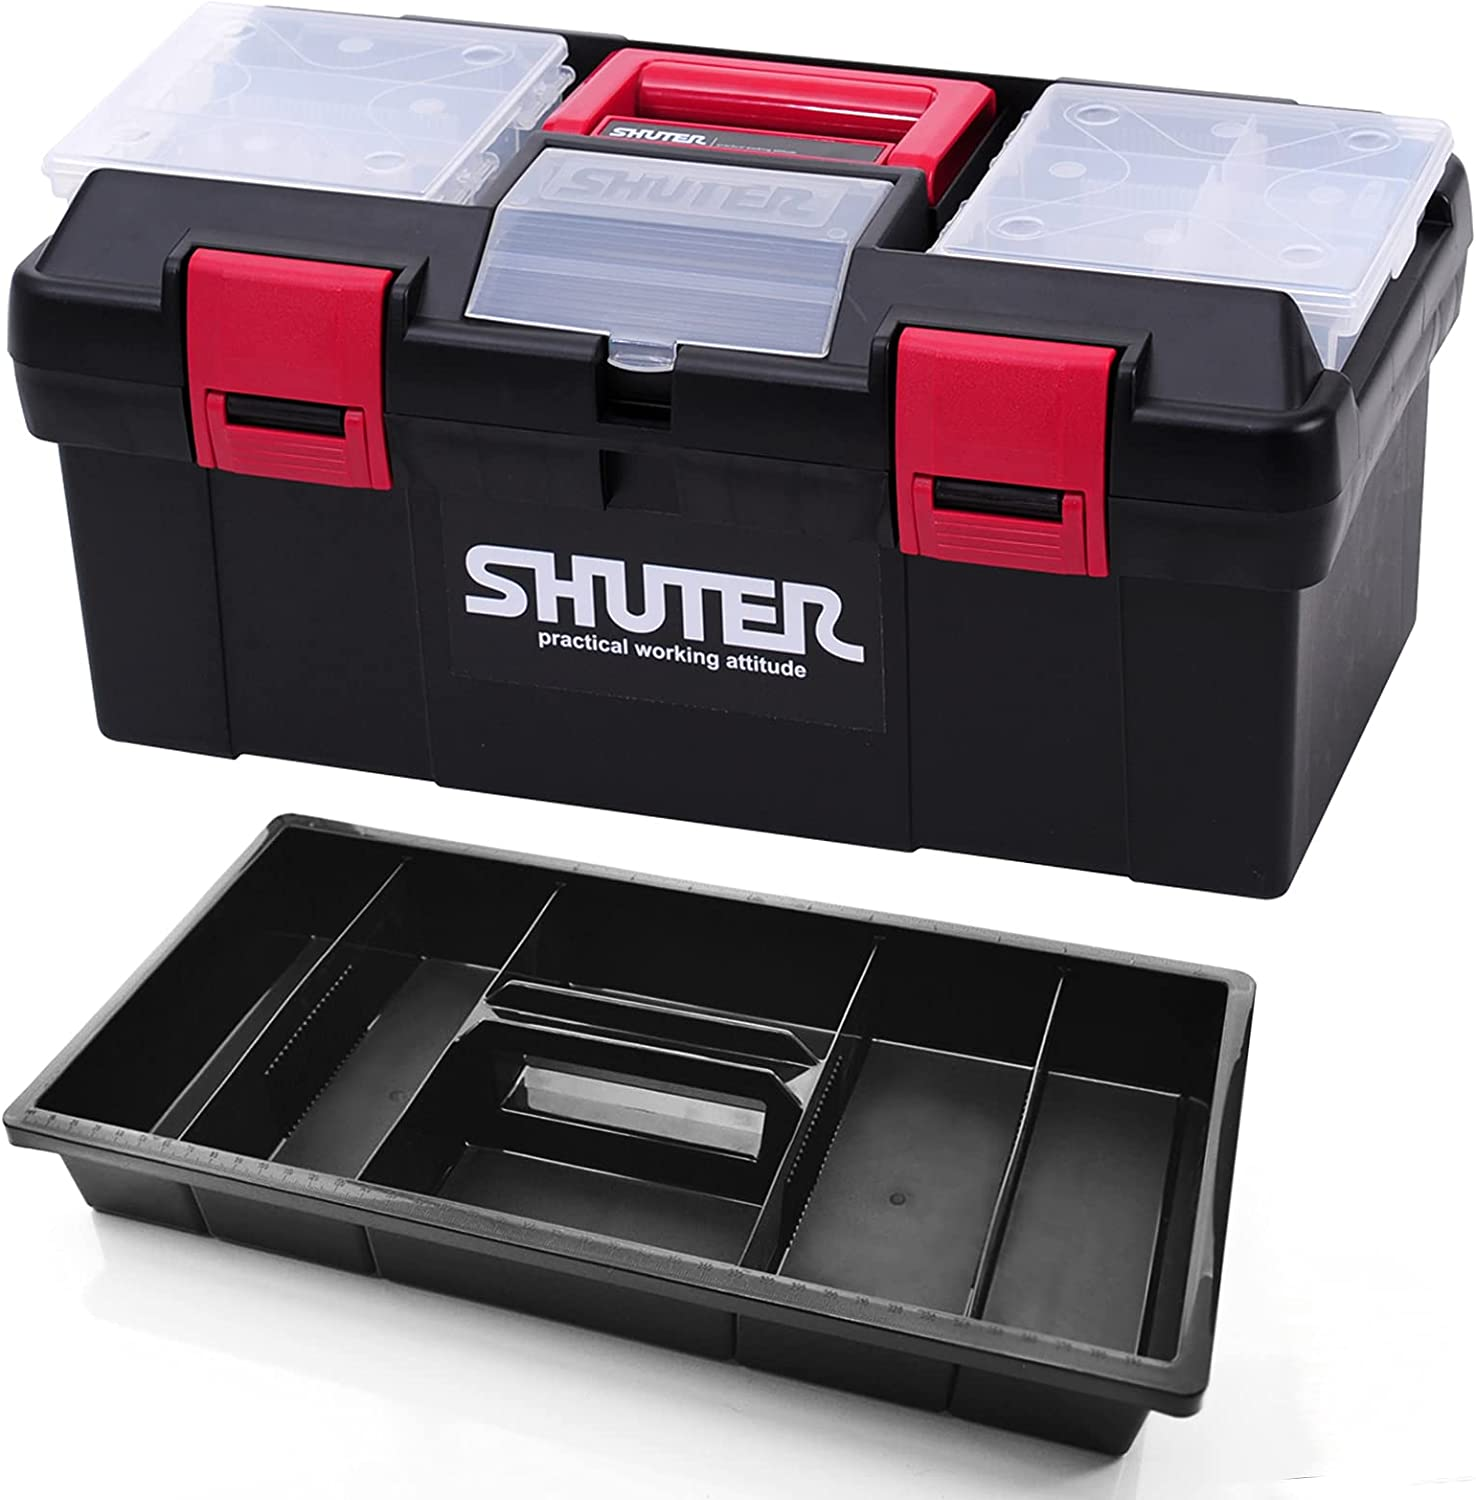 SHUTER 17.5 inch Plastic New popularity Tool Box Clea Cheap bargain 2 Removable and with Tray